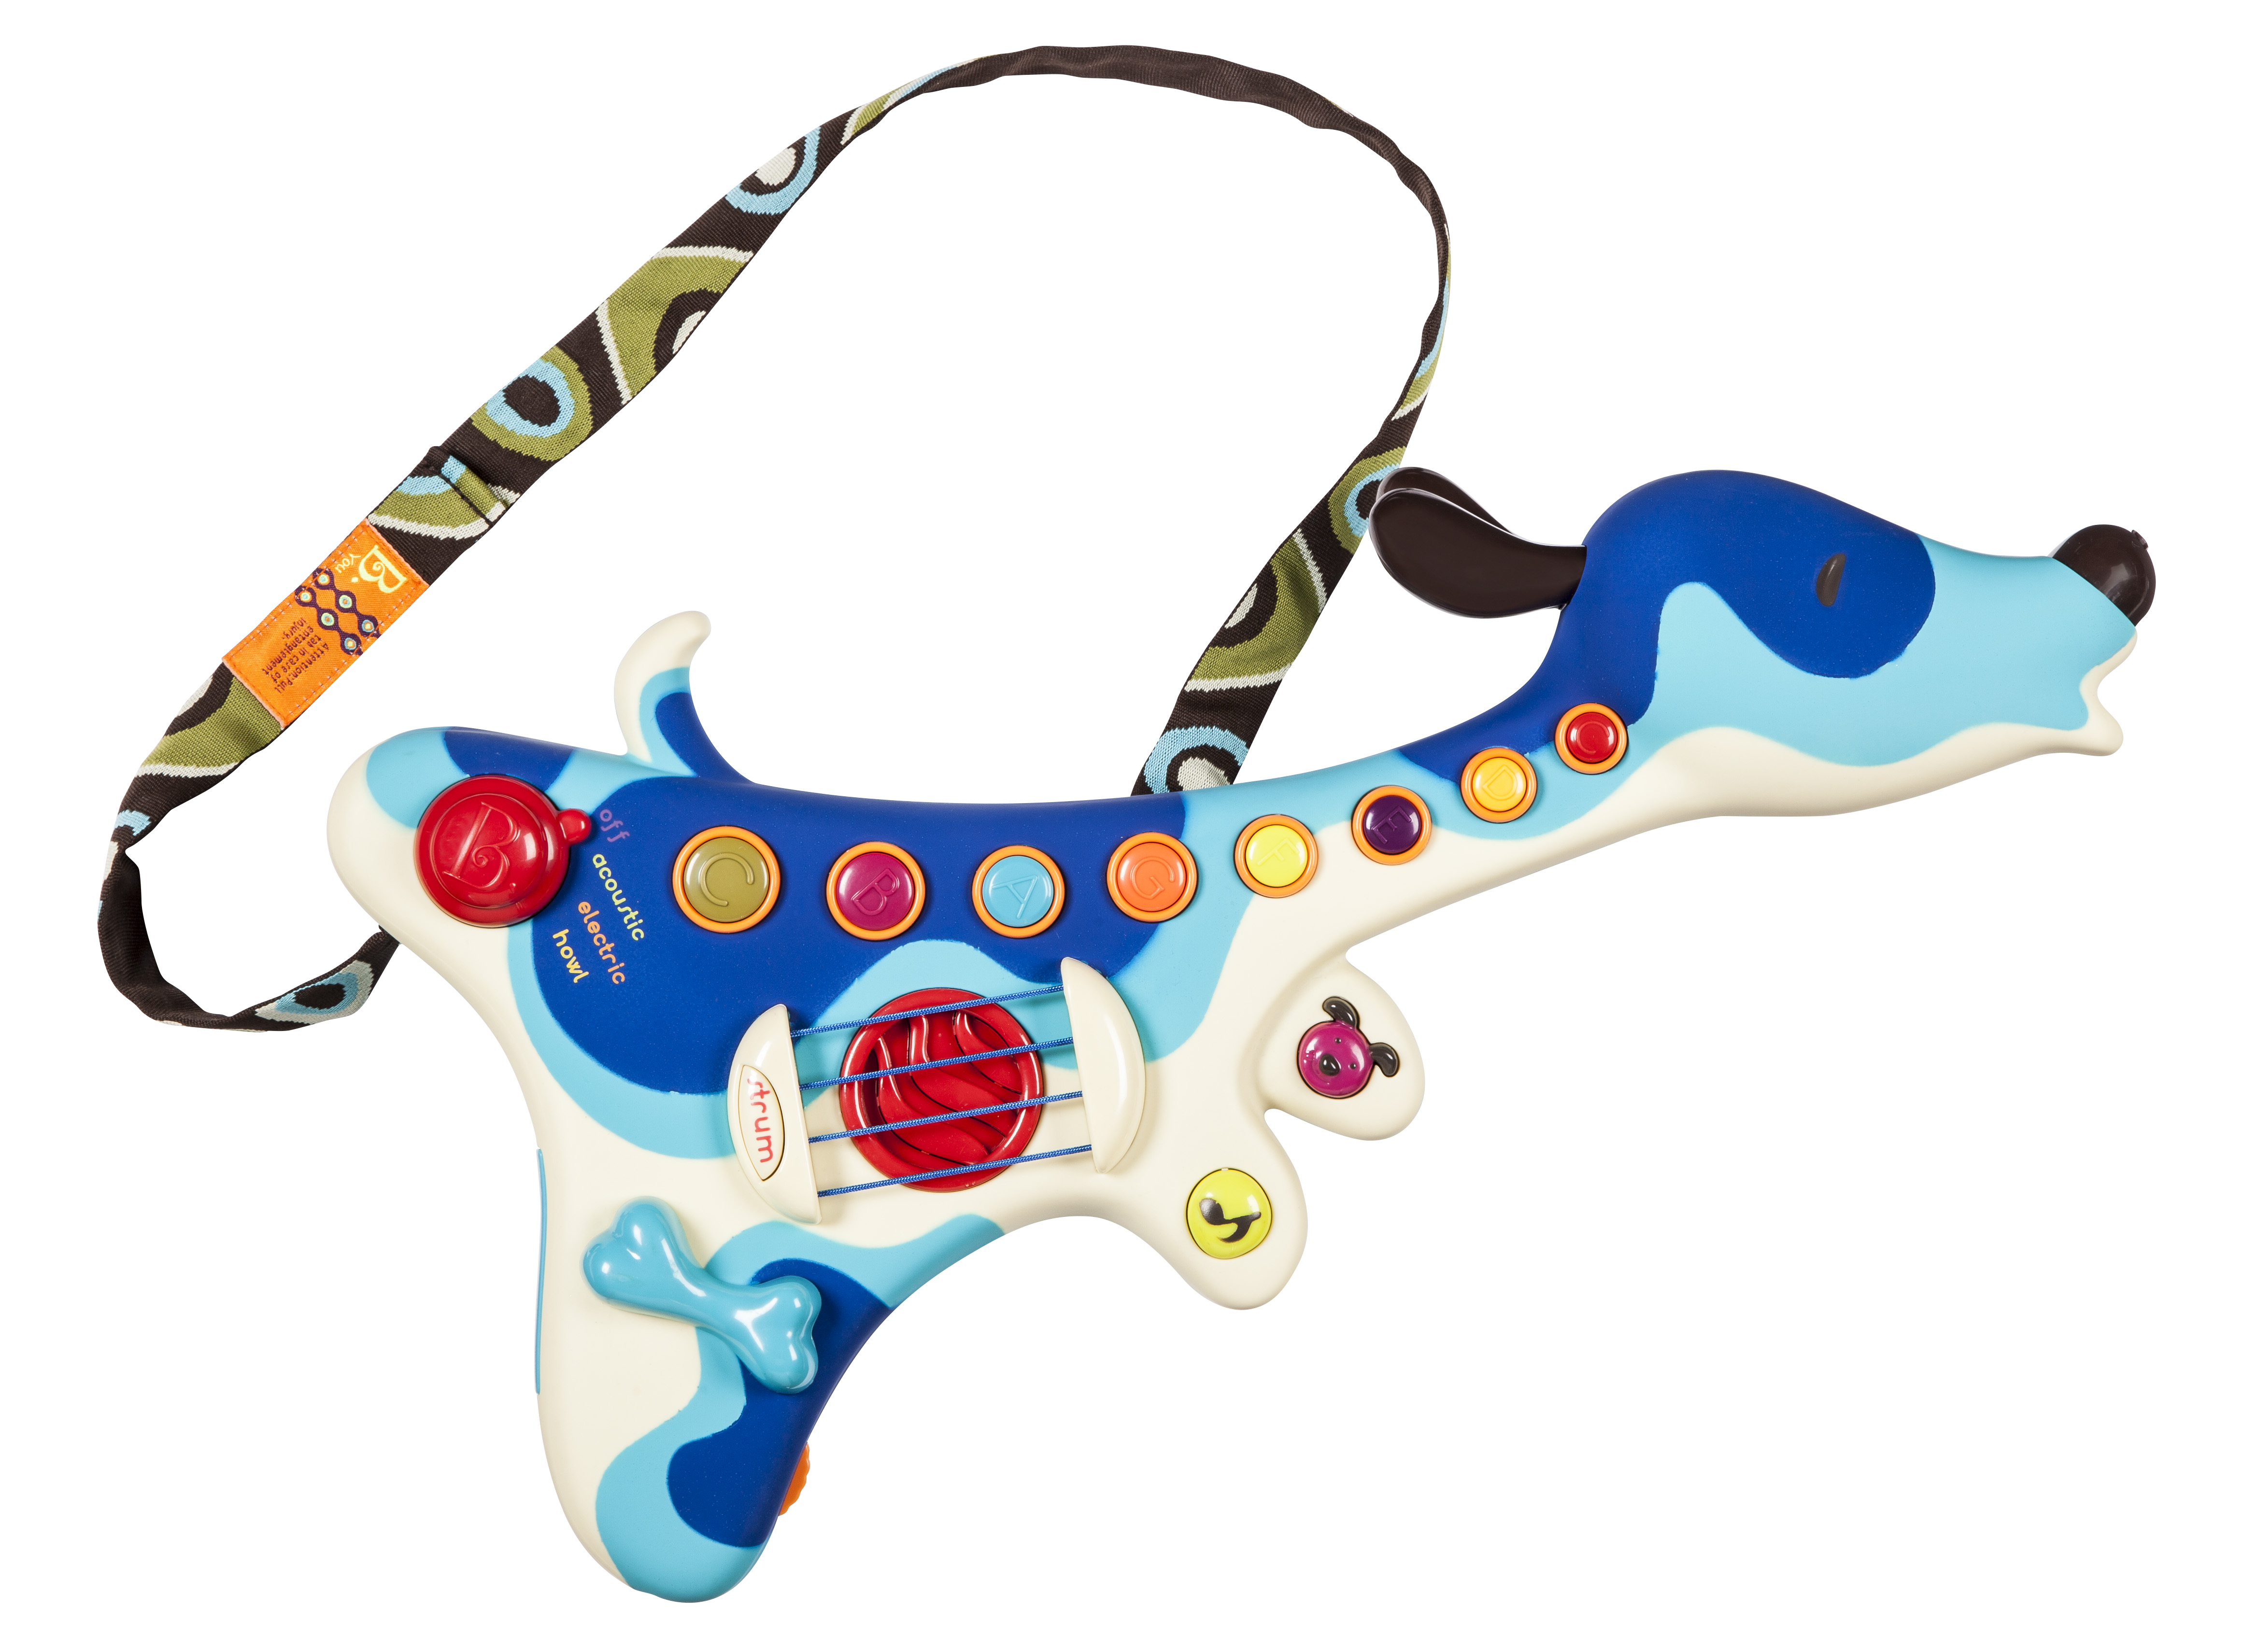 Toy Guitar Target Target Top Toy List And Boutique Brand Toys Images